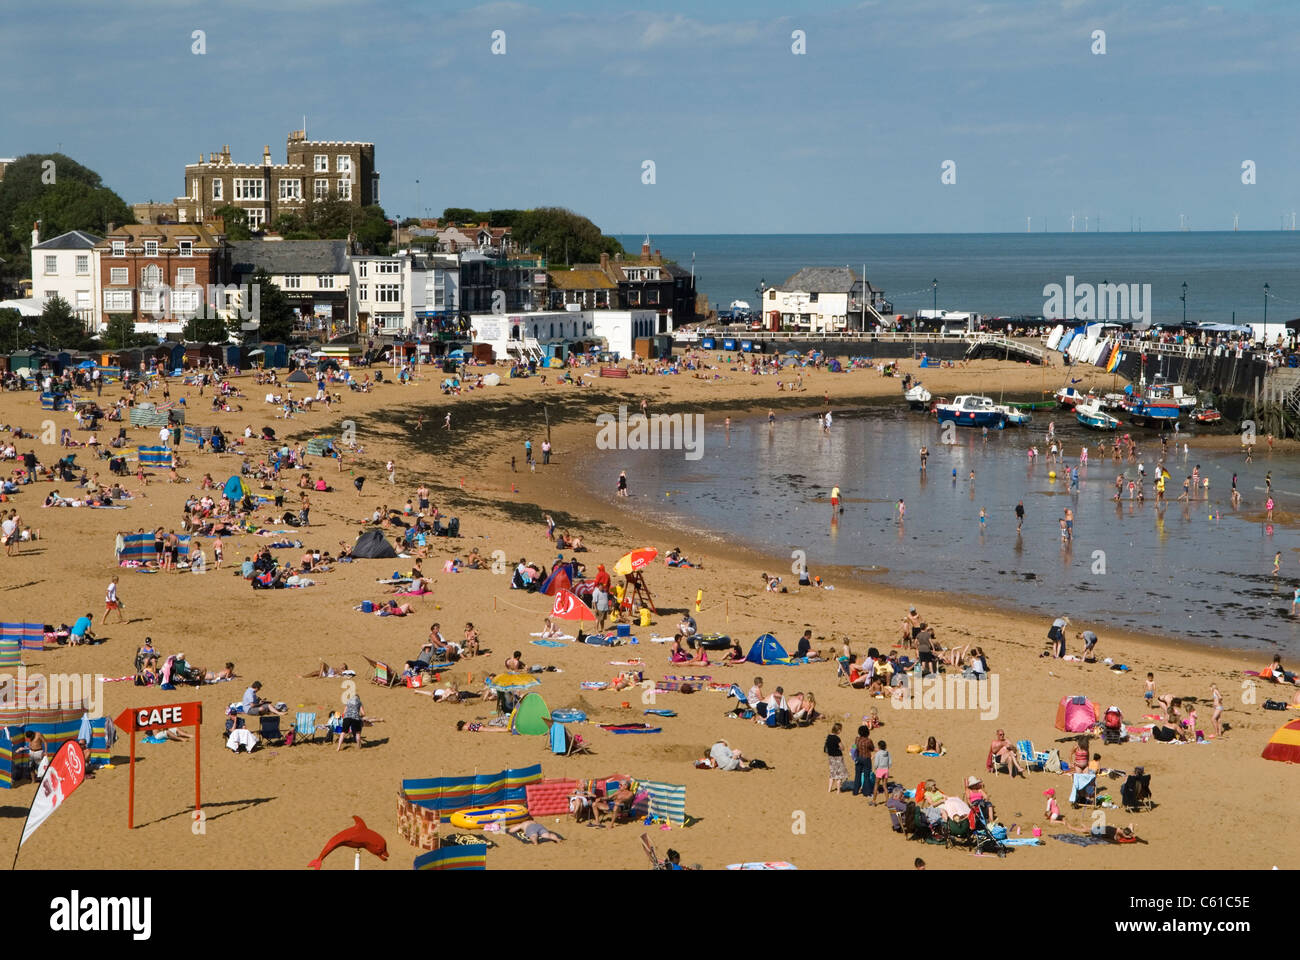 Broadstairs Kent Uk. Viking bay beach tourists on their annual summer holidays. Bleak House over looking the bay. - Stock Image